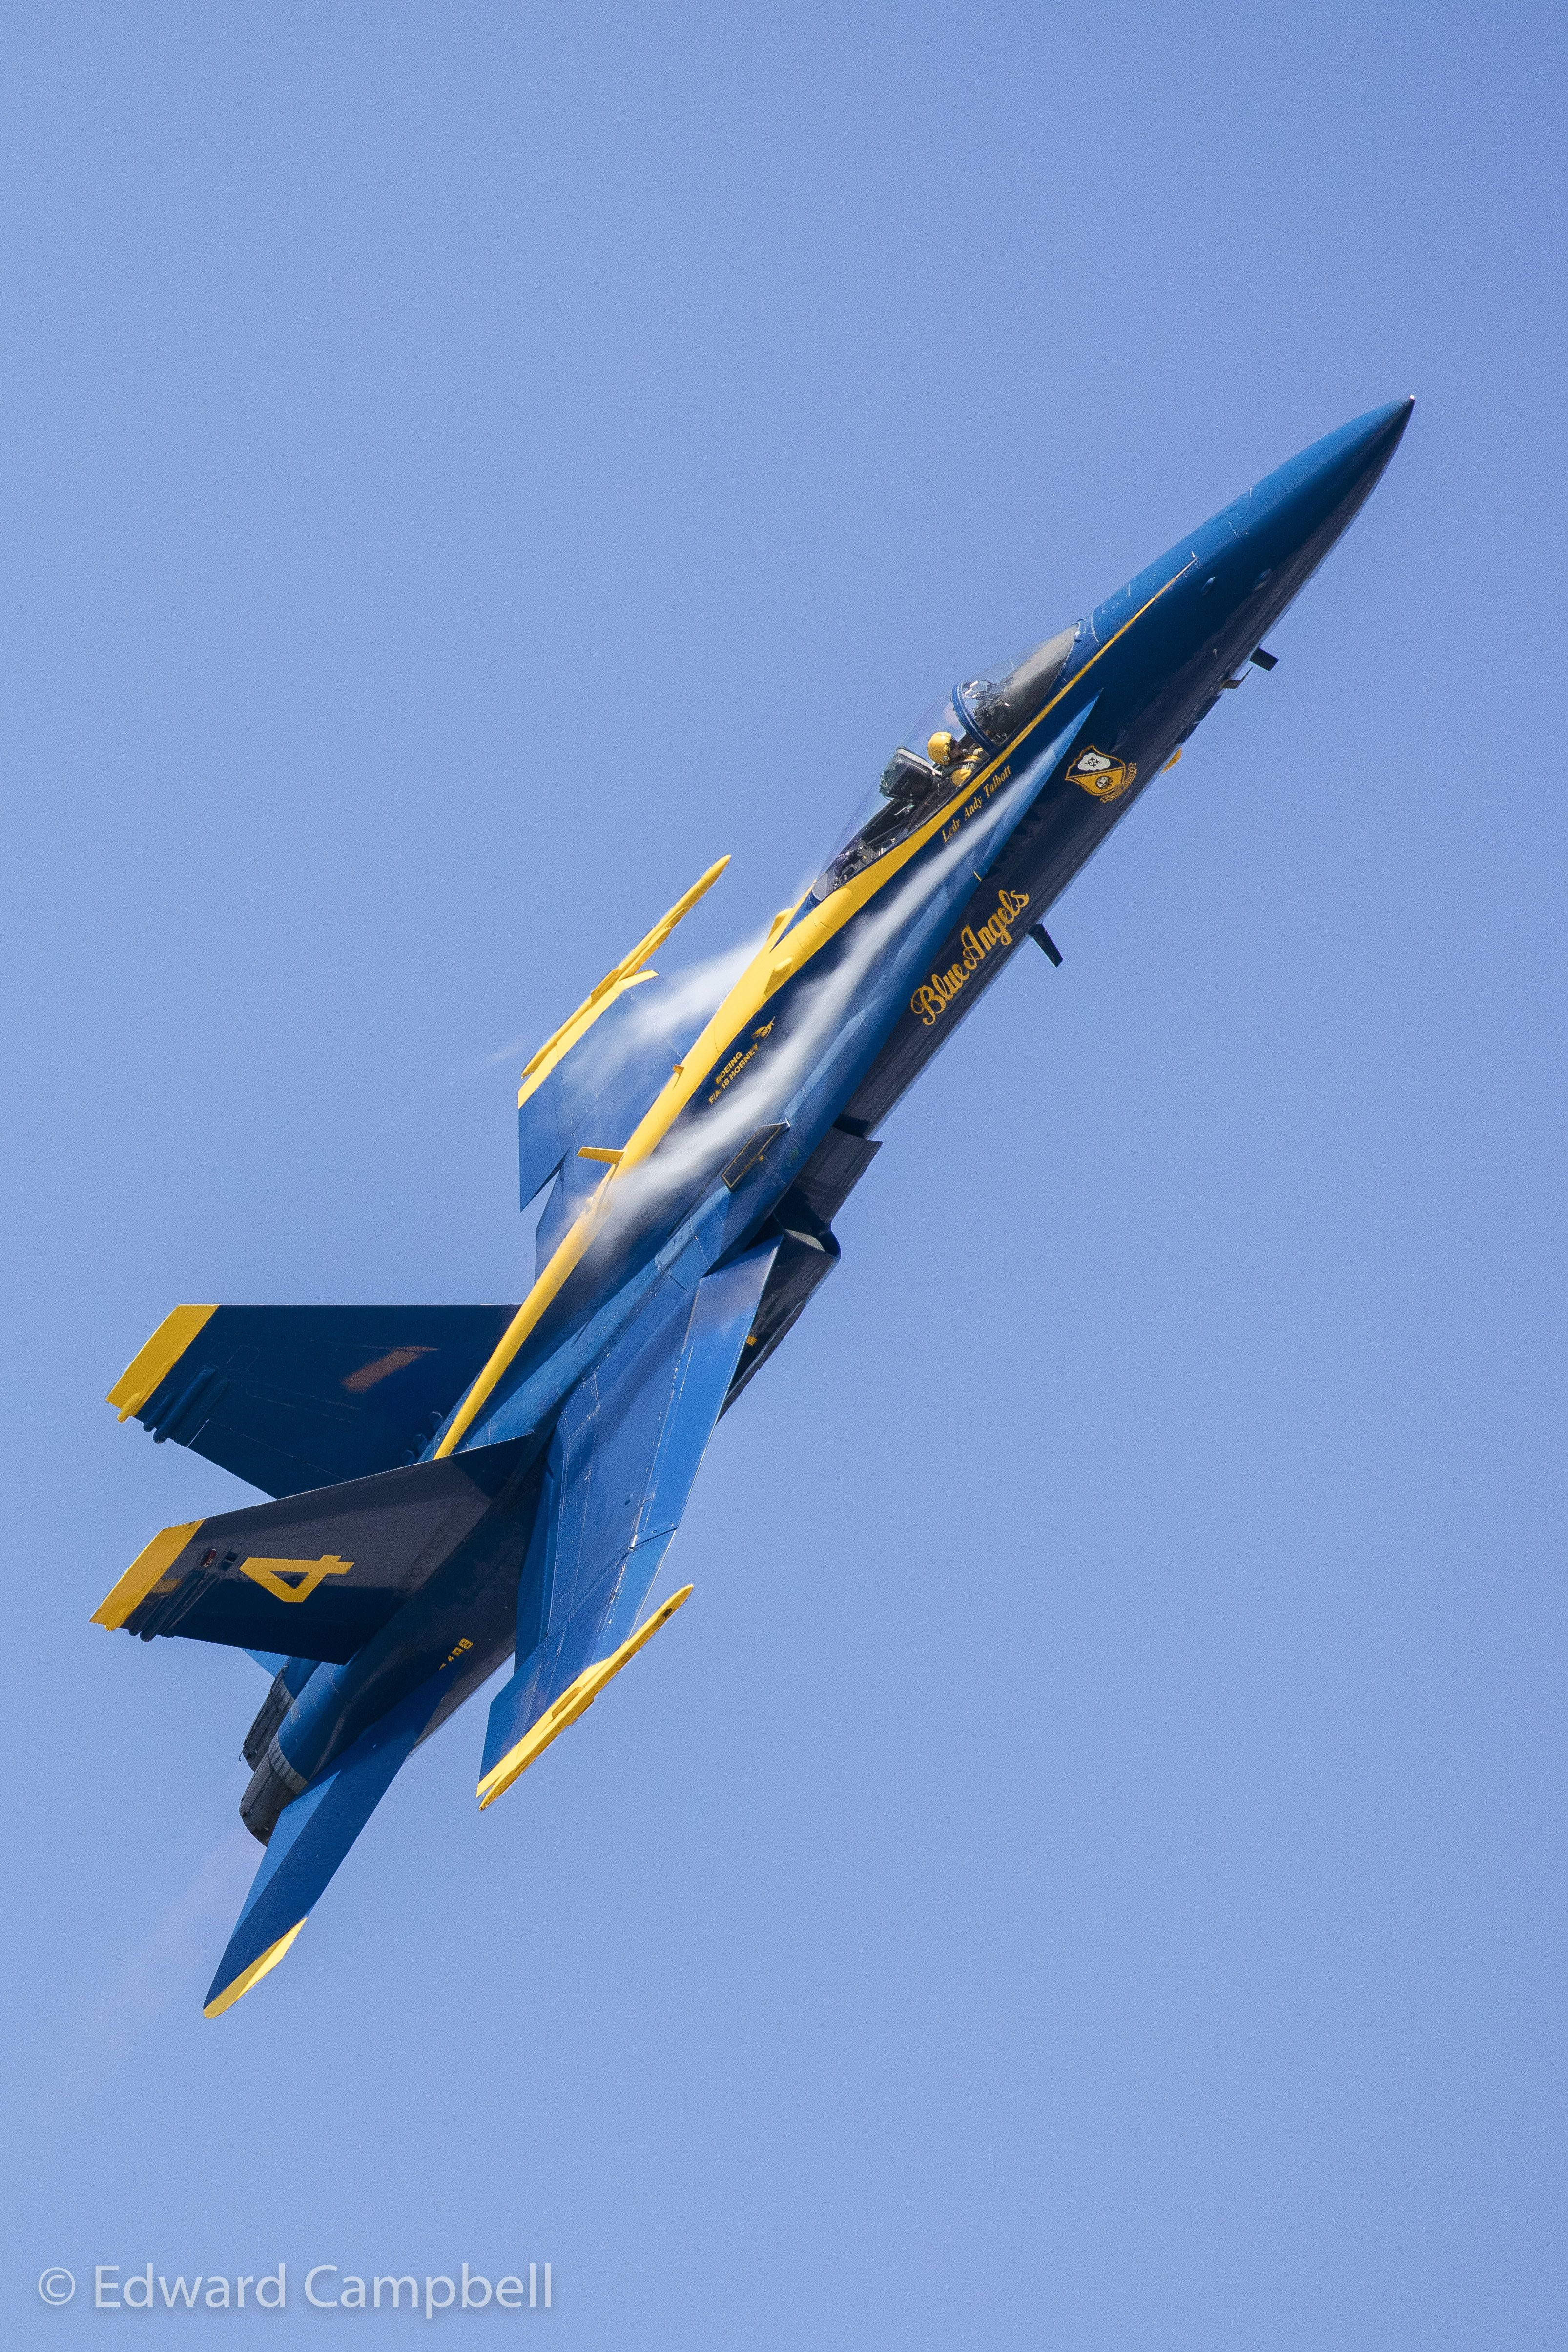 U.S. Navy Blue Angels perform at the 2016 Cleveland